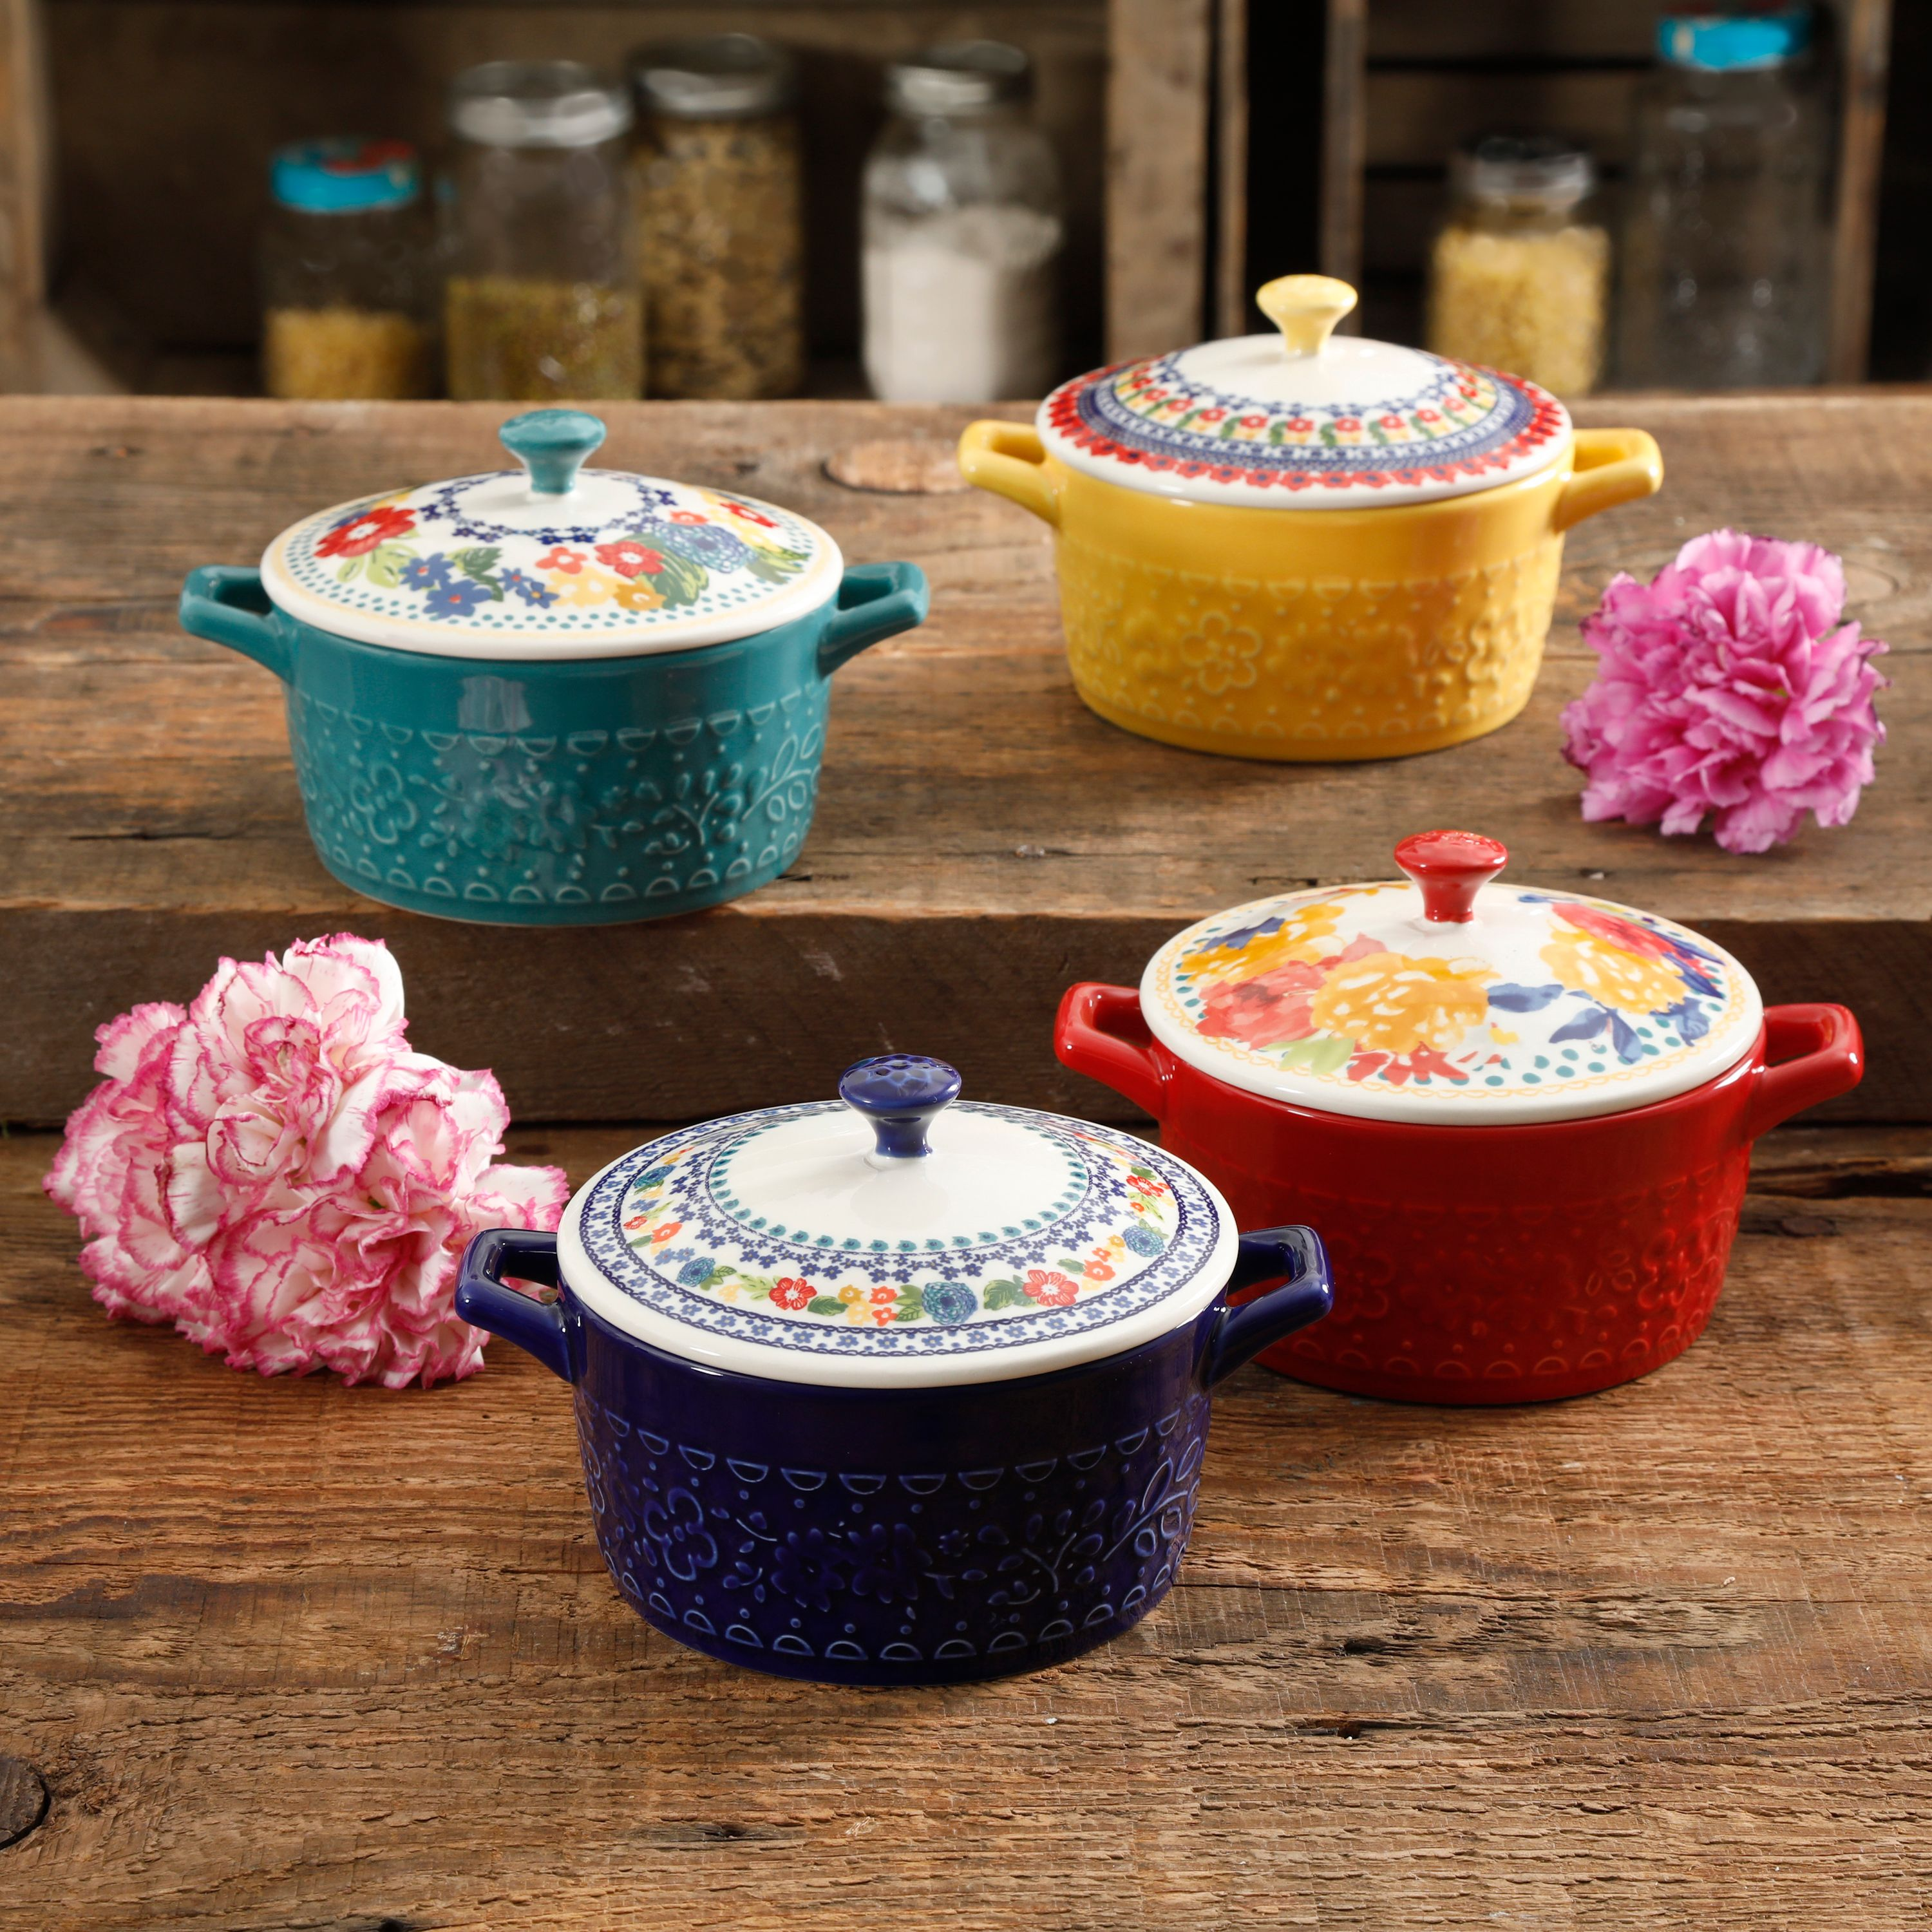 The Pioneer Woman Floral 6.25-Inch Casserole with Lid, Set of 4